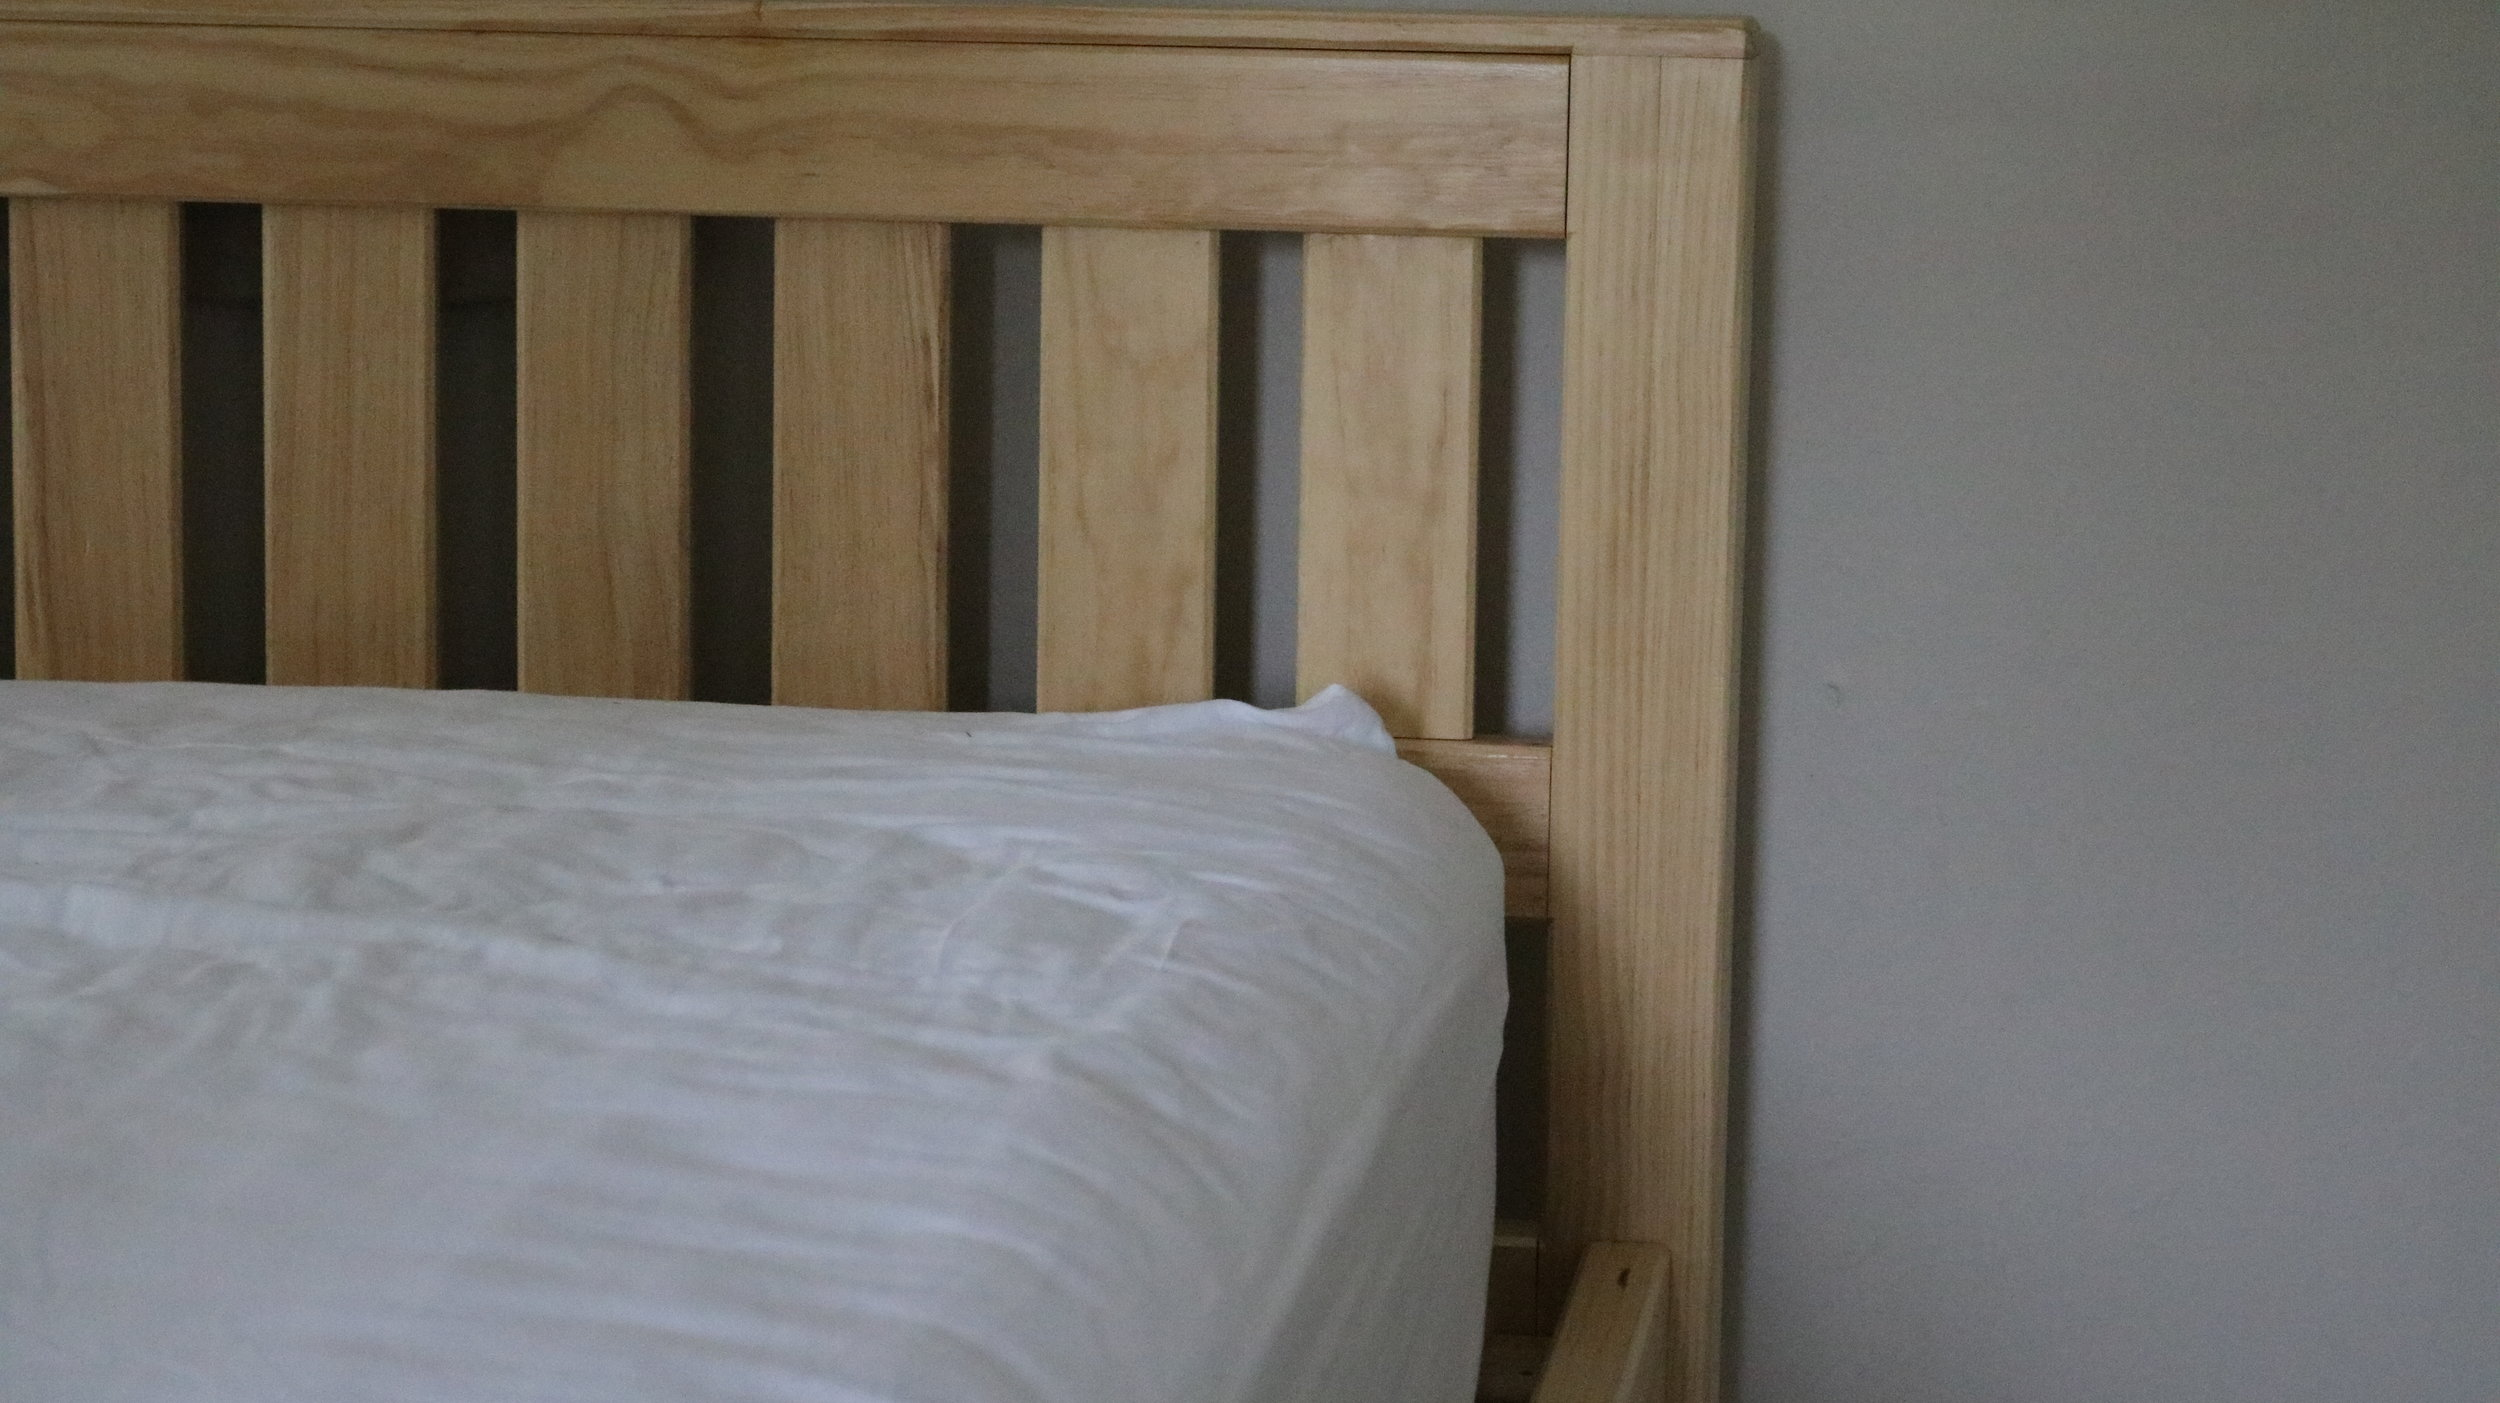 Custom height pine slat bed frame